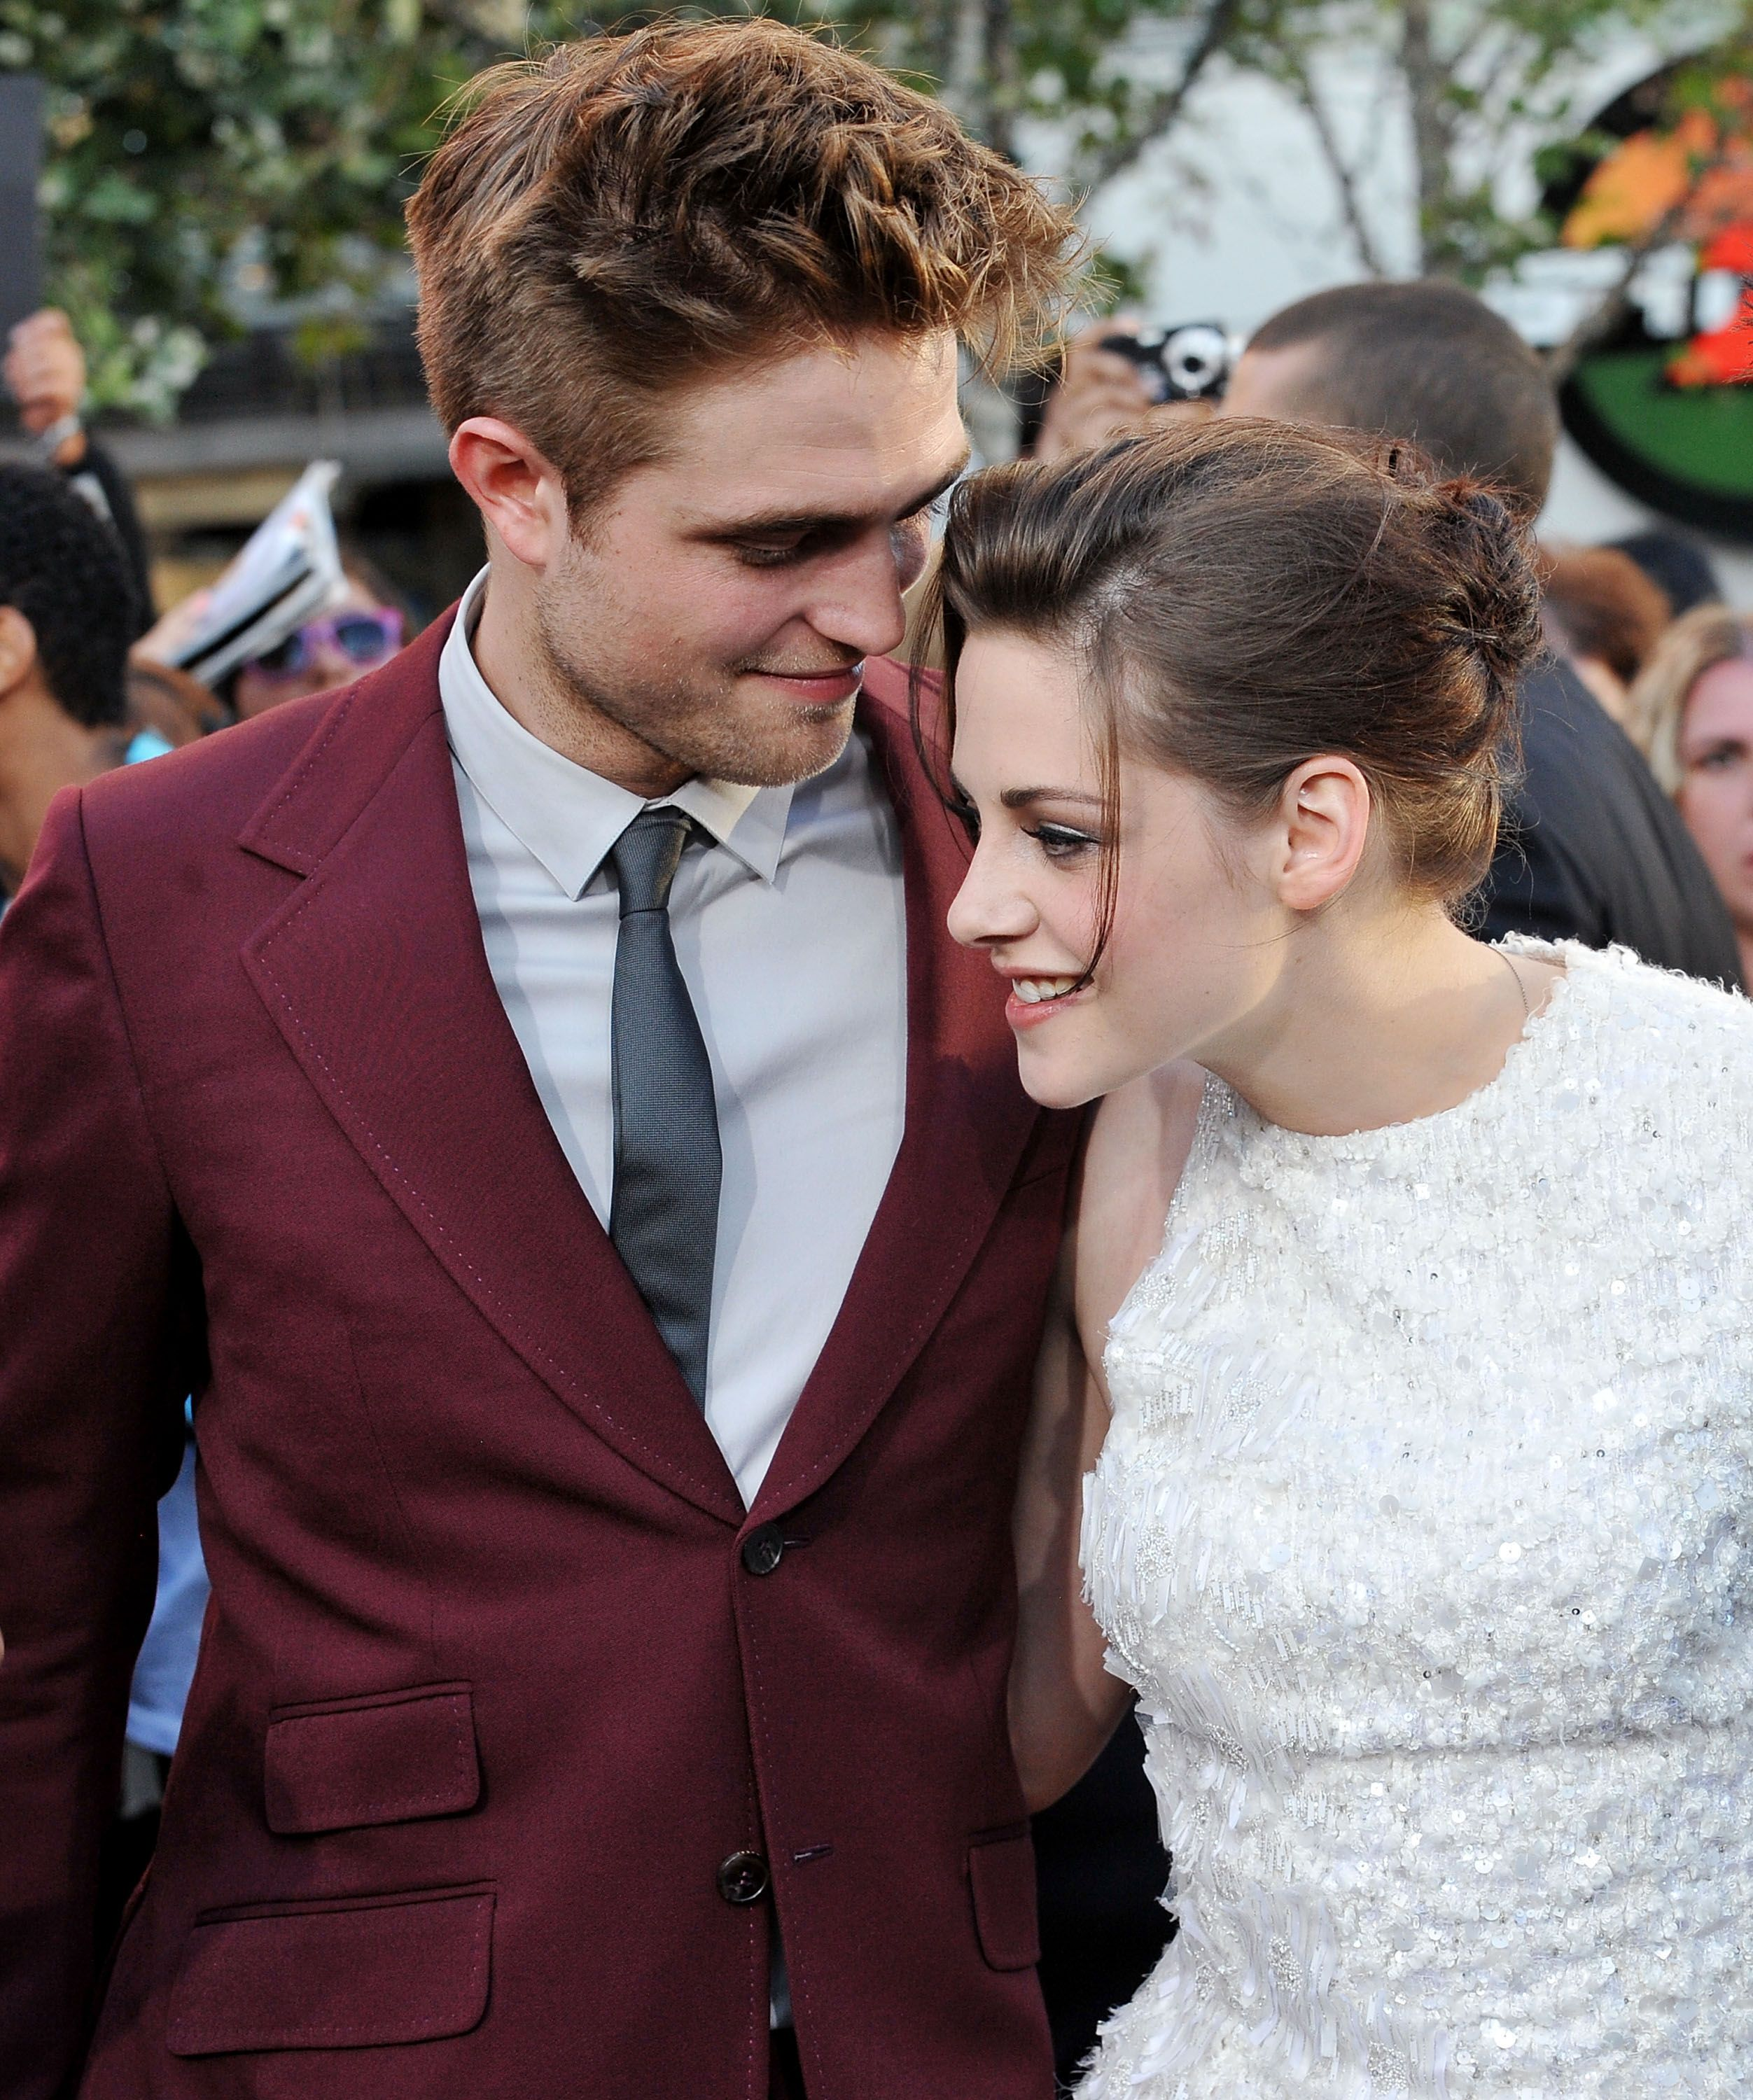 Who is robert pattinson dating in real life